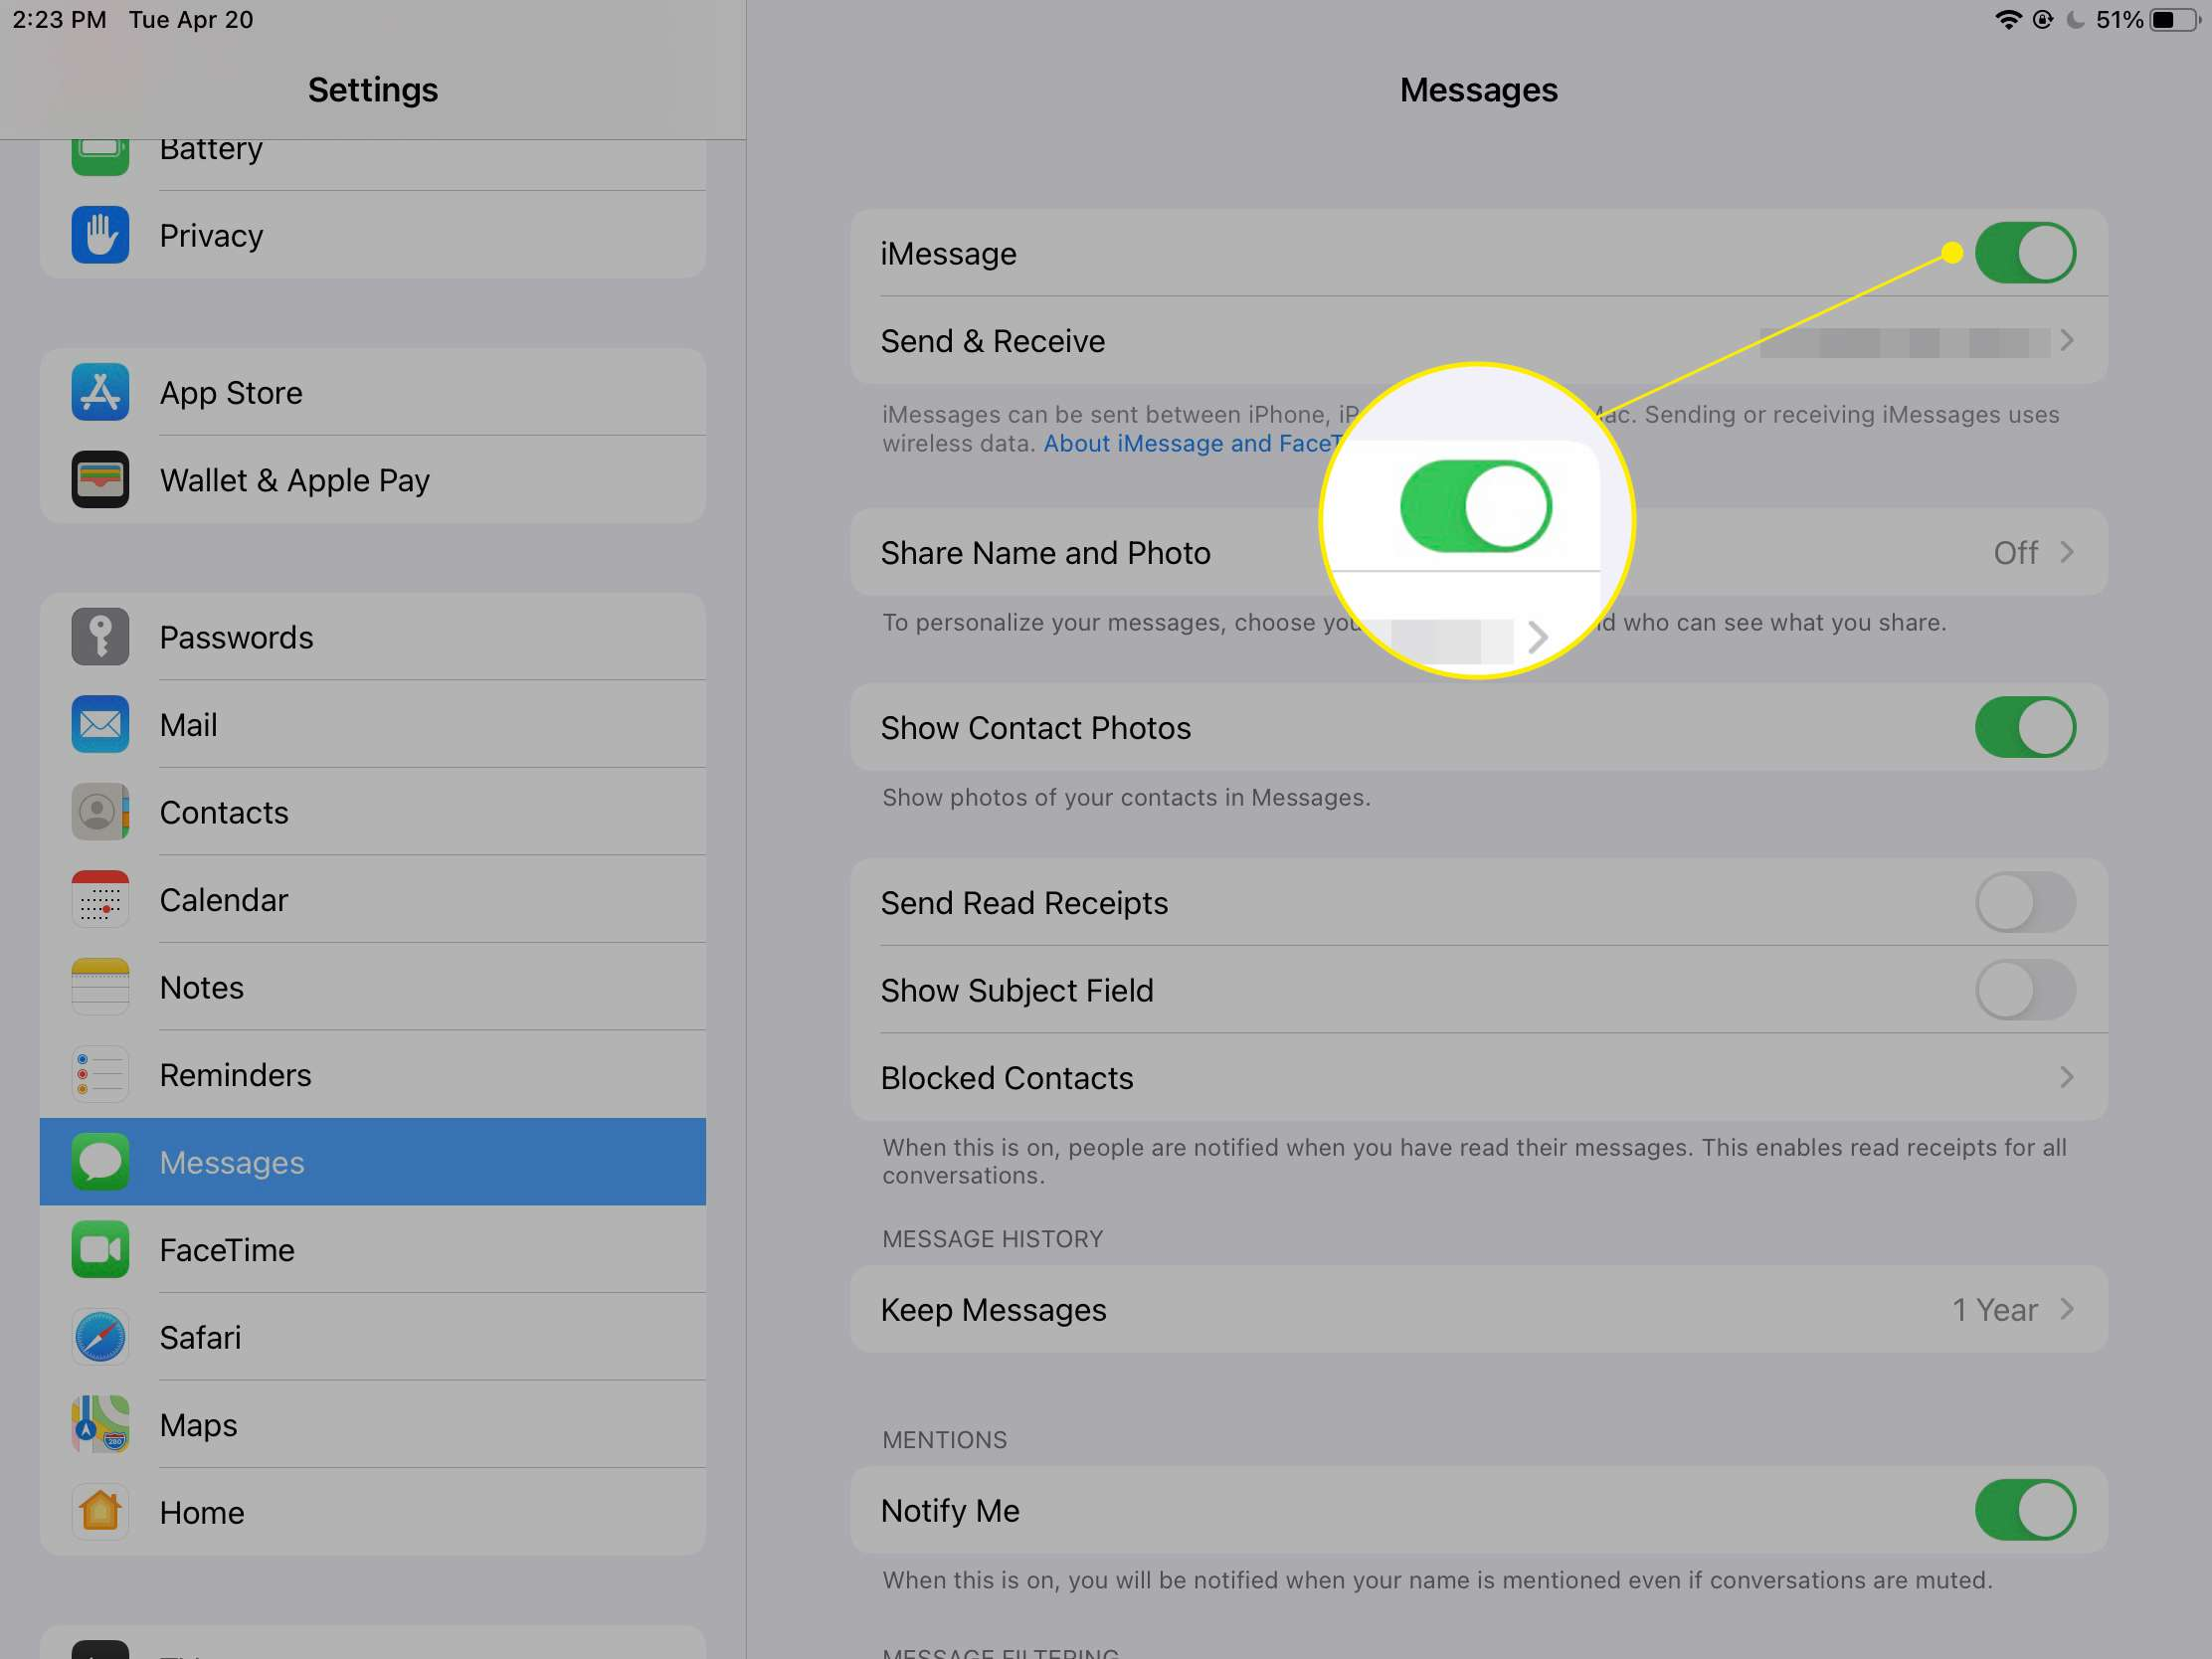 iMessage toggled on in settings with green slider highlighted